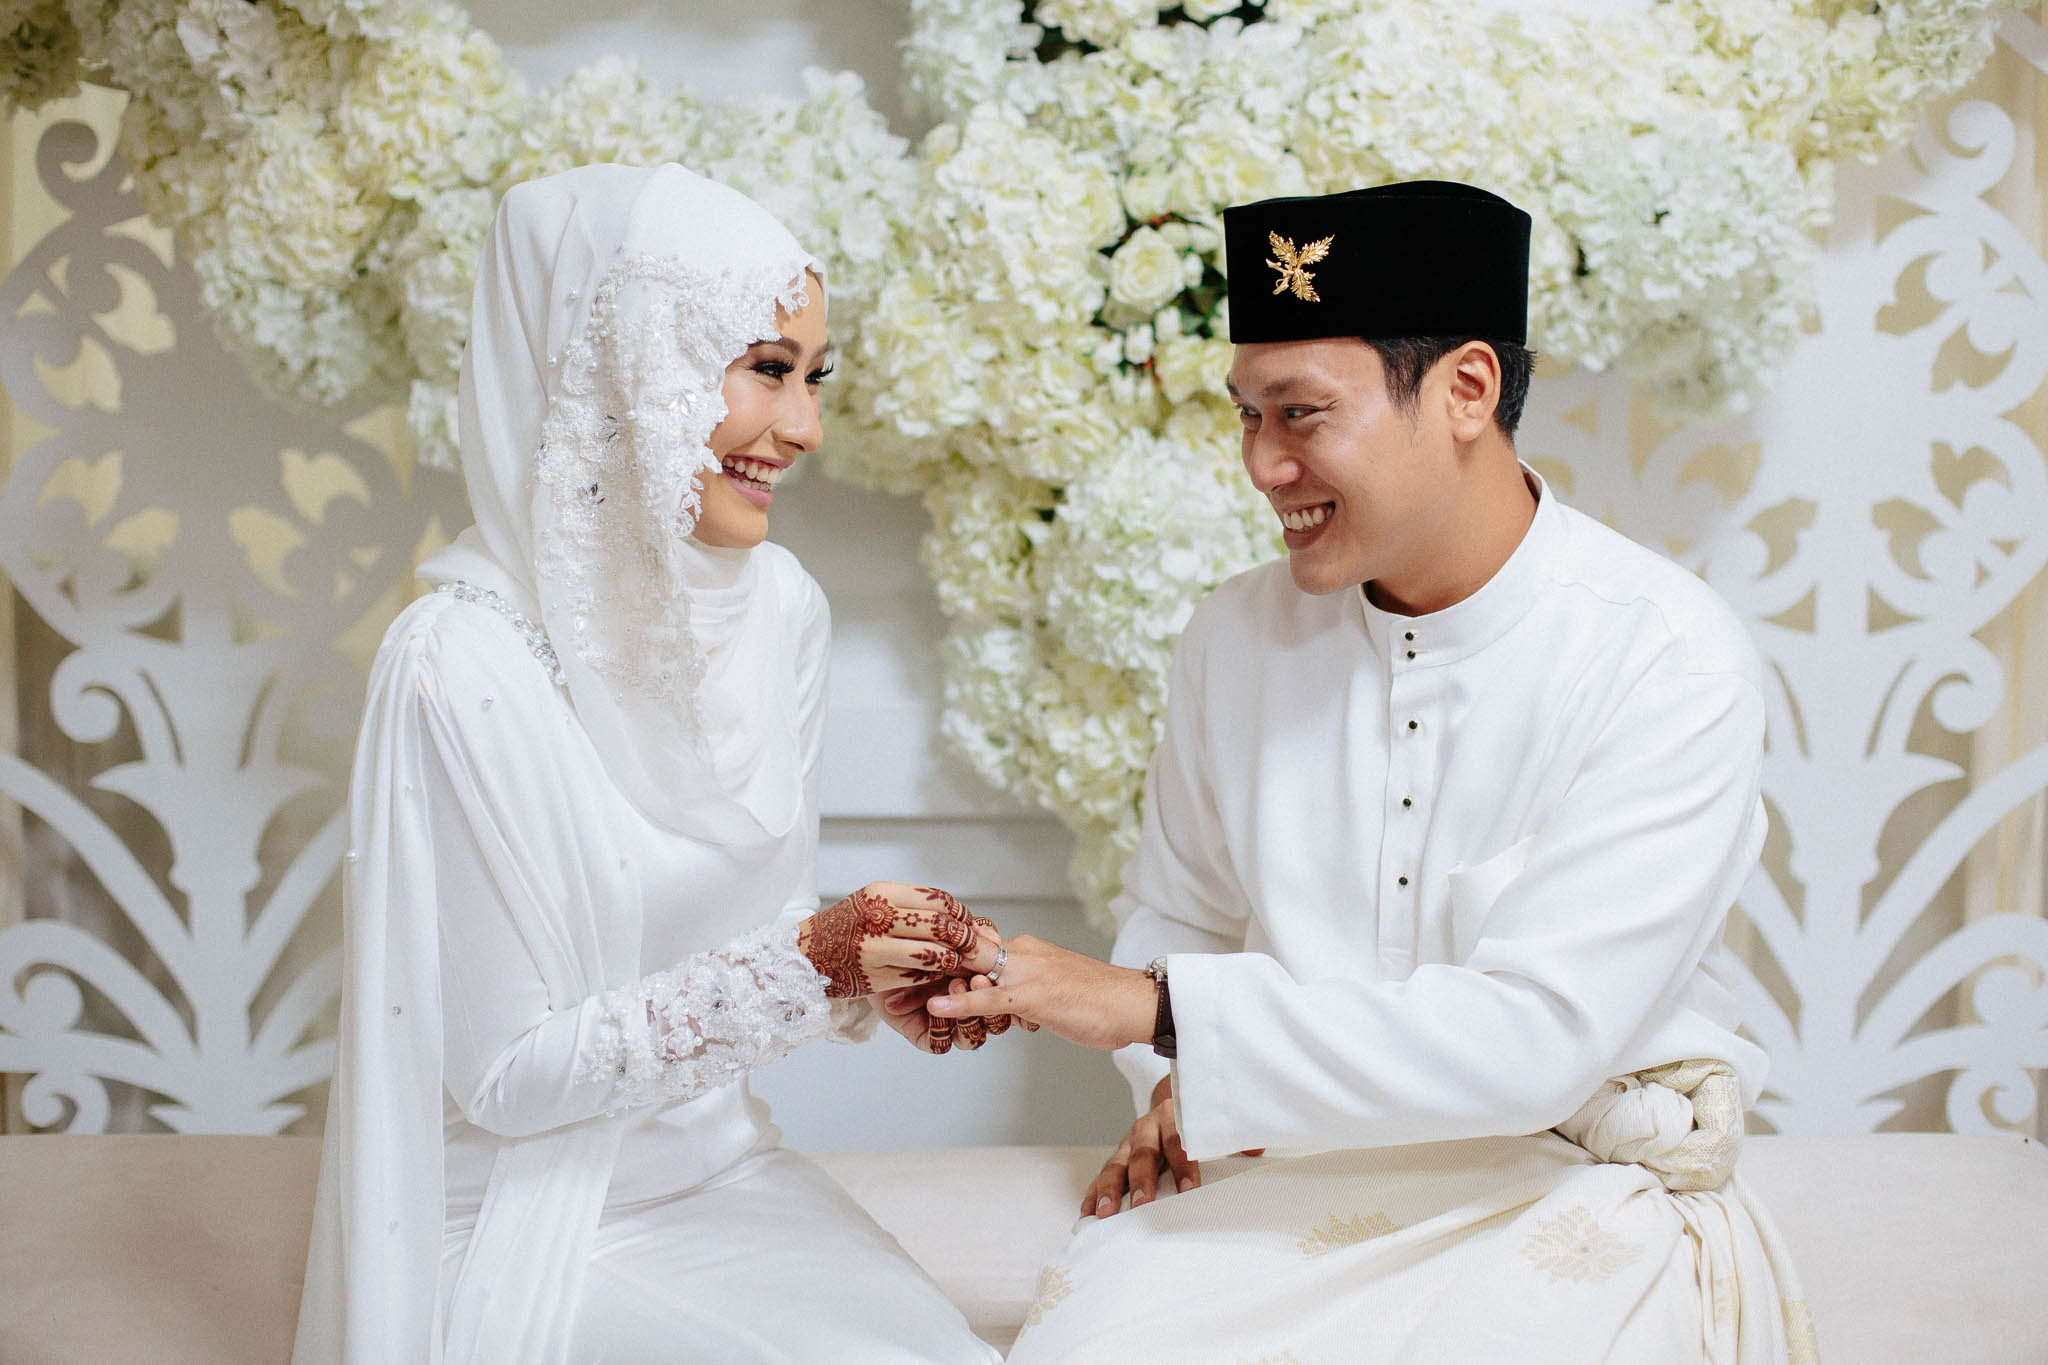 singapore-wedding-photographer-sarah-razif-38.jpg